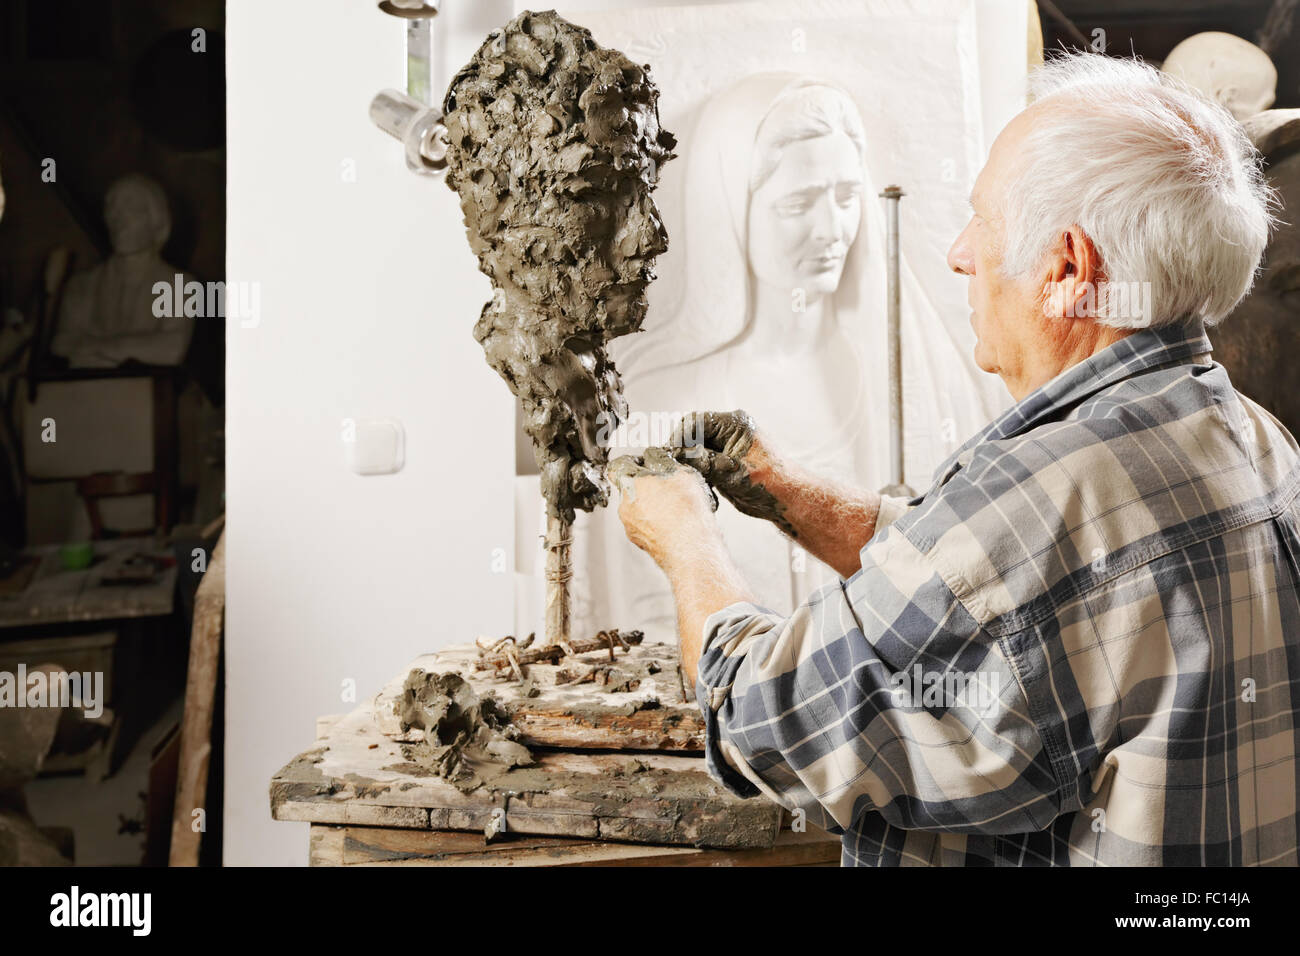 Elderly sculptor making sculpture - Stock Image